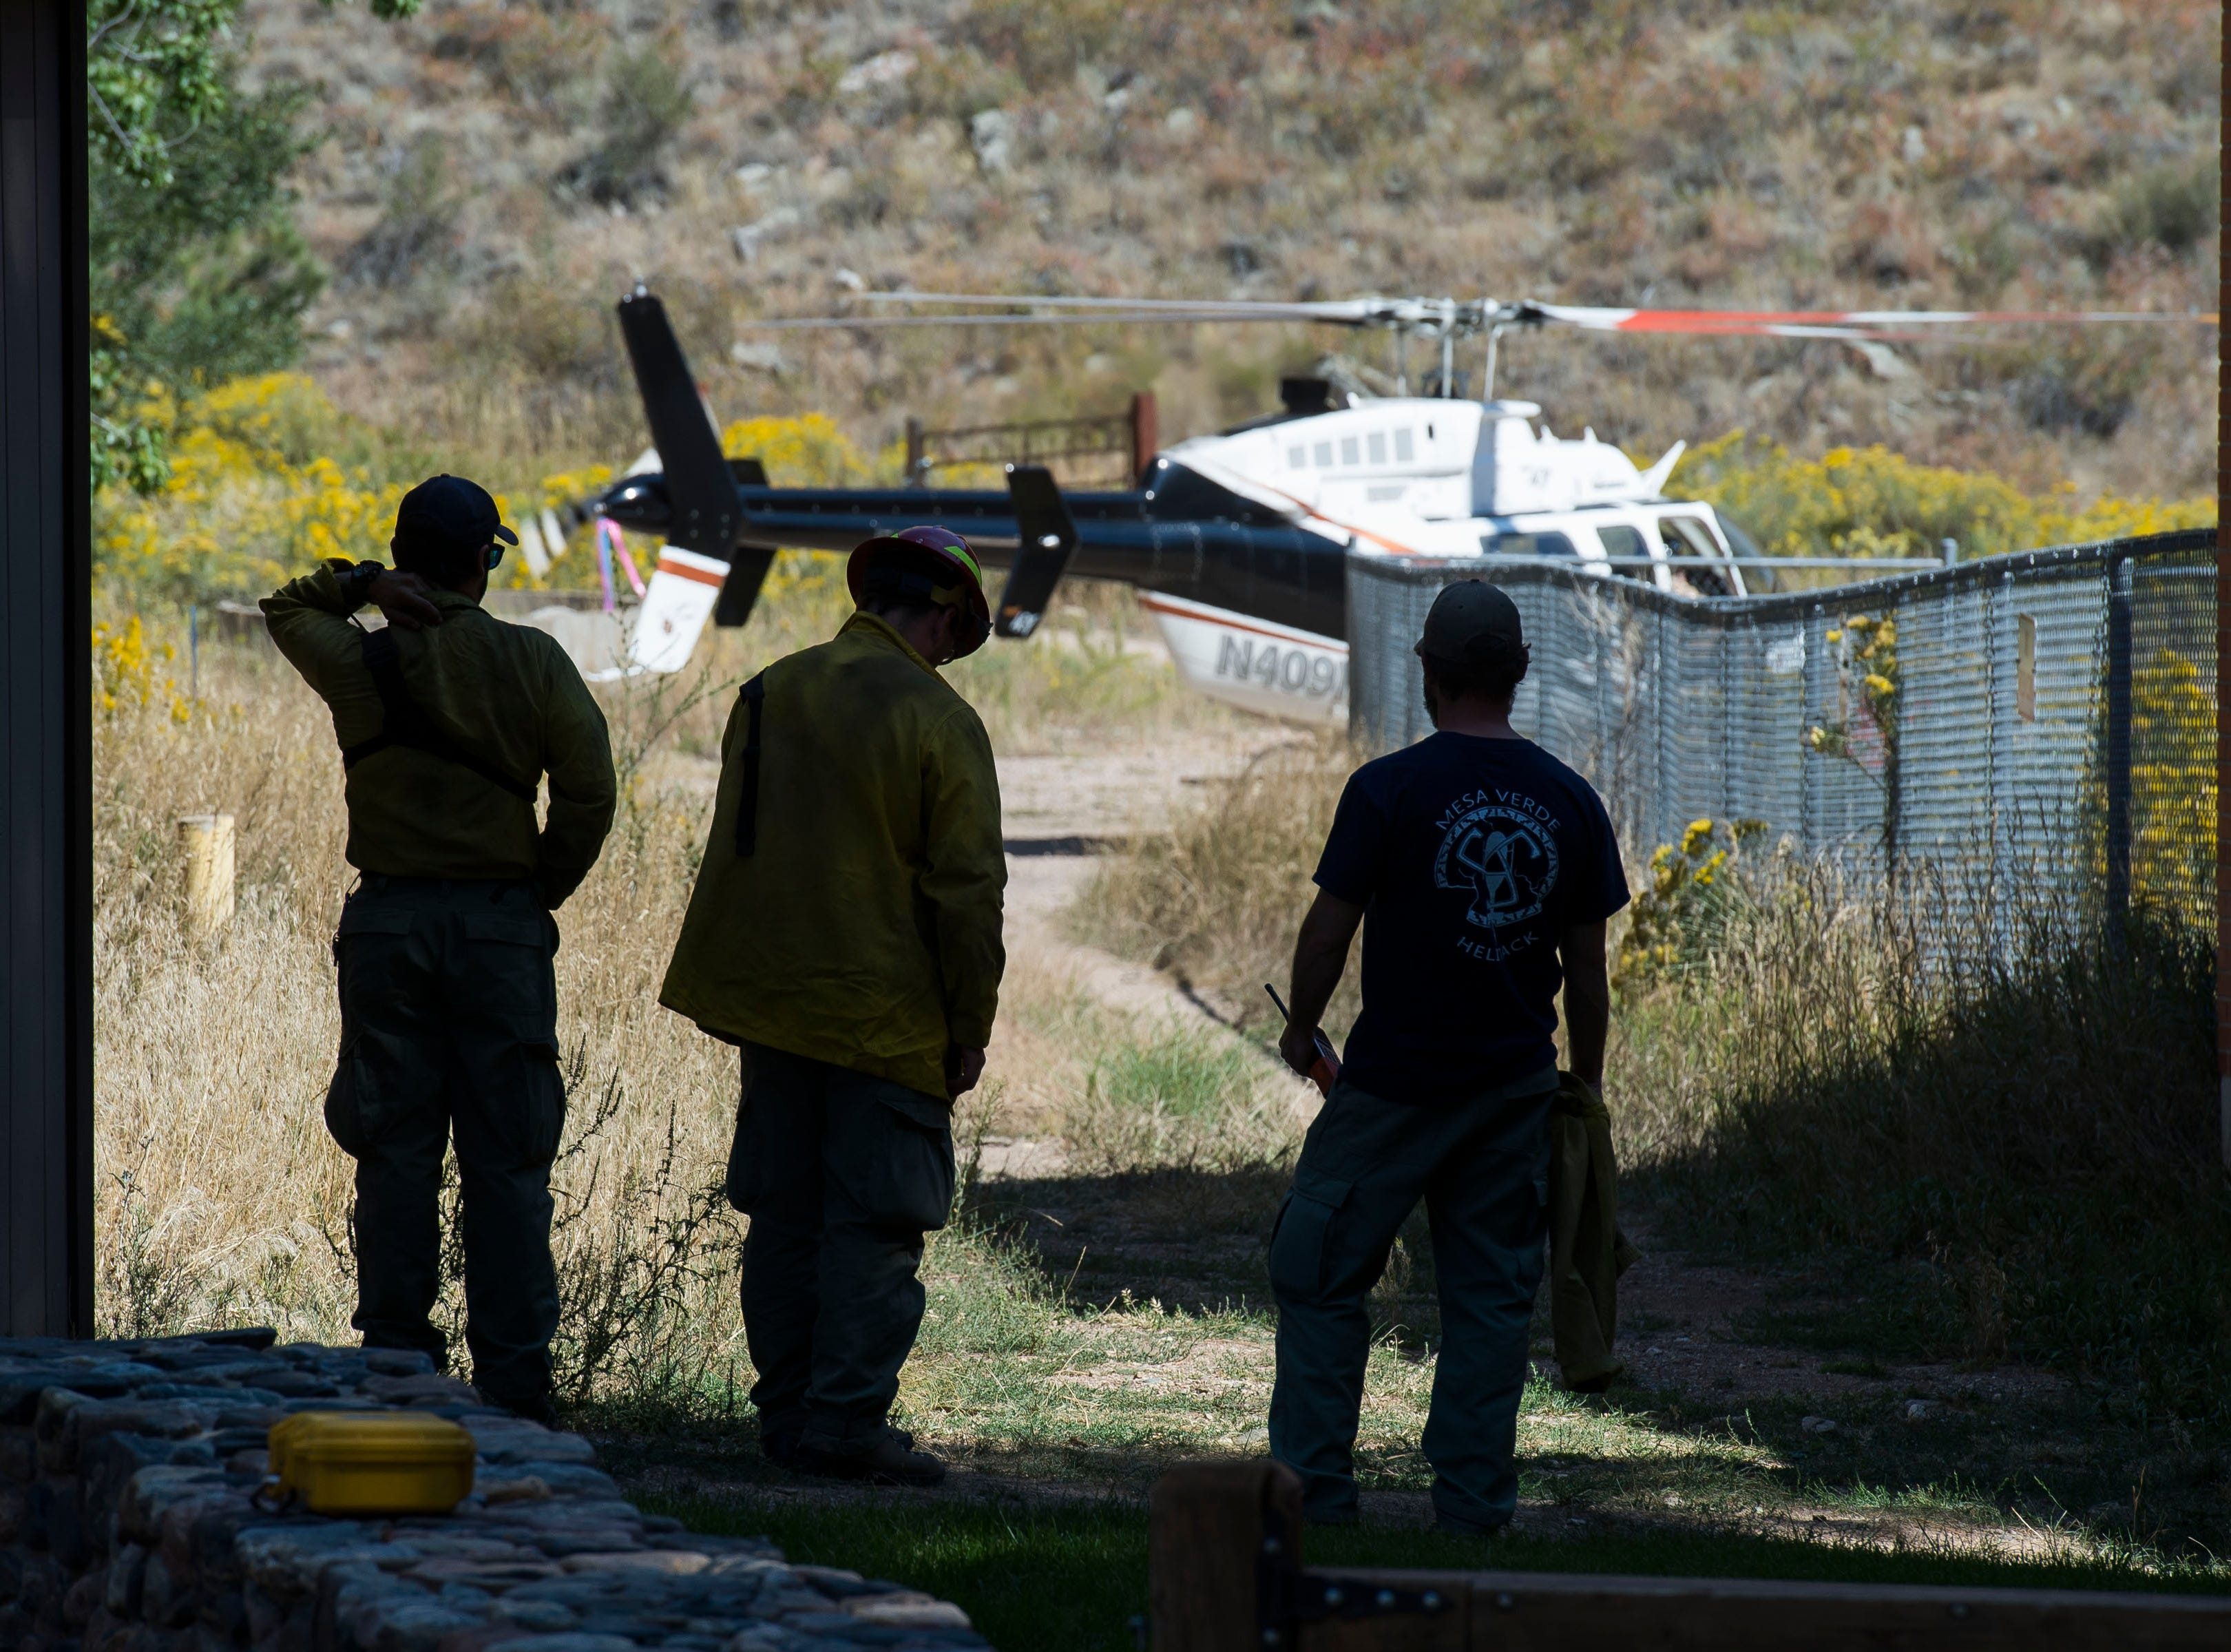 Firefighters look on as a helicopter pulling water from Seaman Reservoir lands at Gateway Park on Wednesday, Sept. 12, 2018, in the Poudre Canyon, near Seaman Reservoir in Larimer County, Colo.